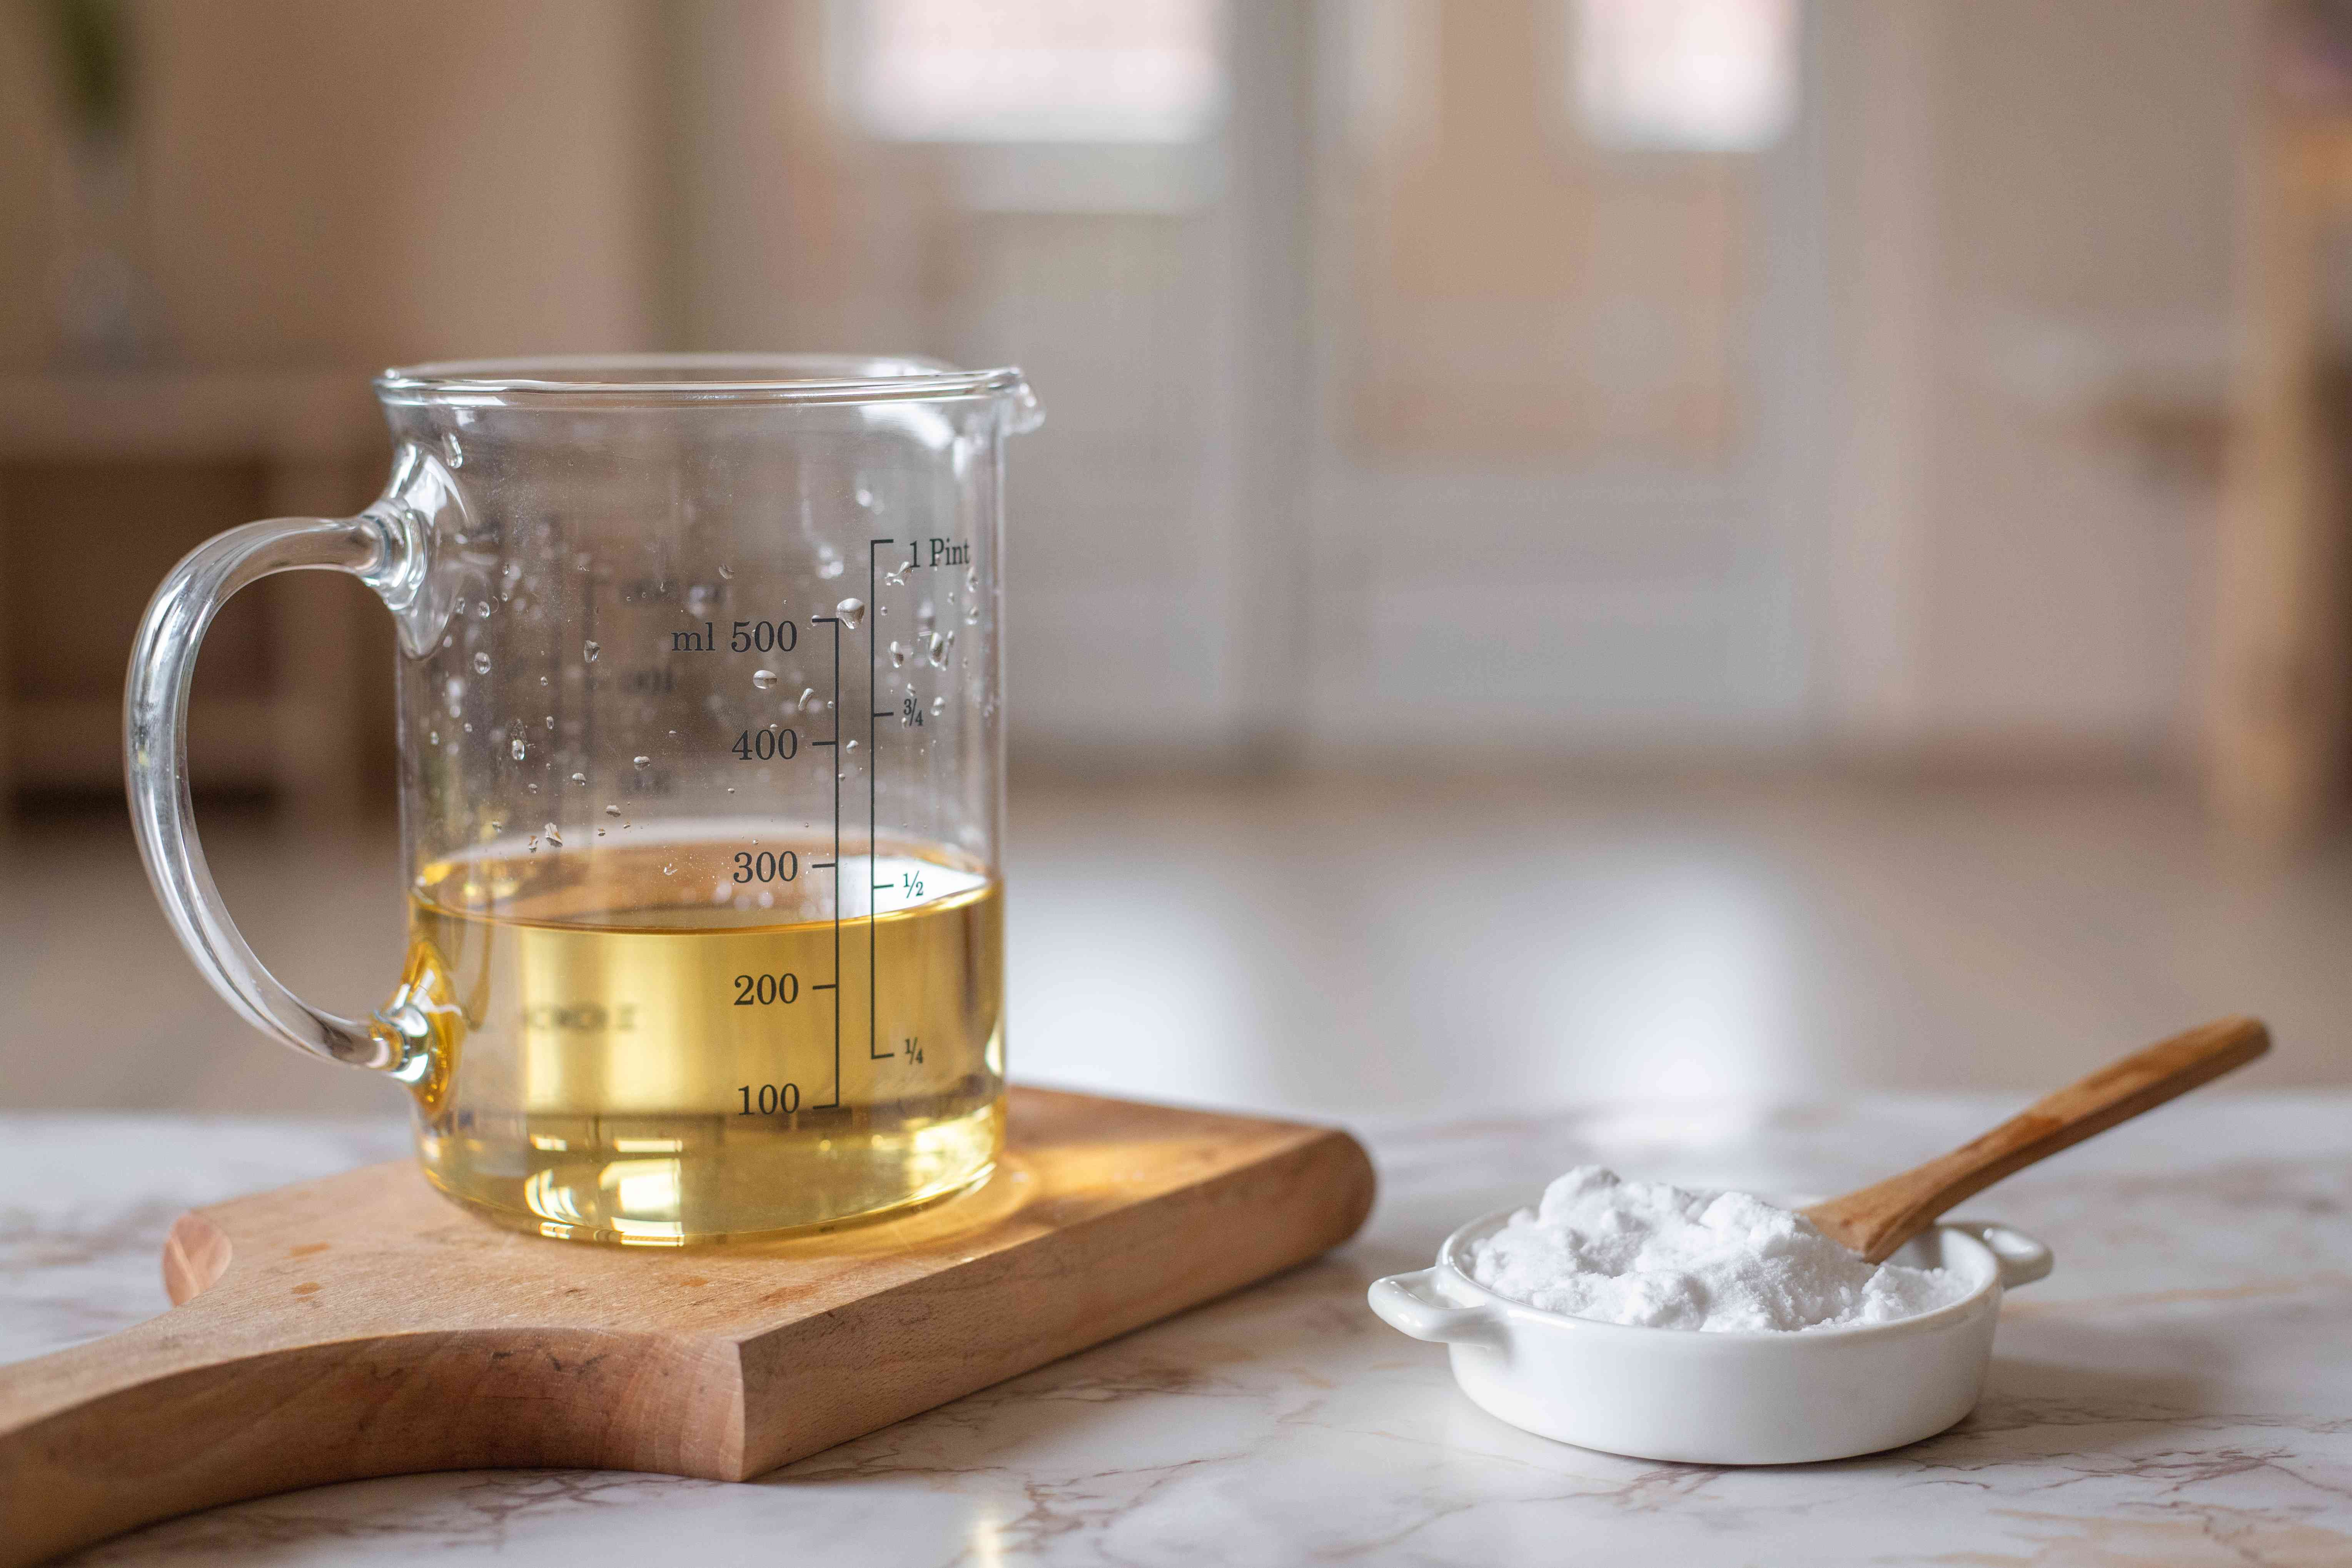 product shot of apple cider vinegar in measuring jar with baking soda in small ramekin with wooden spoon